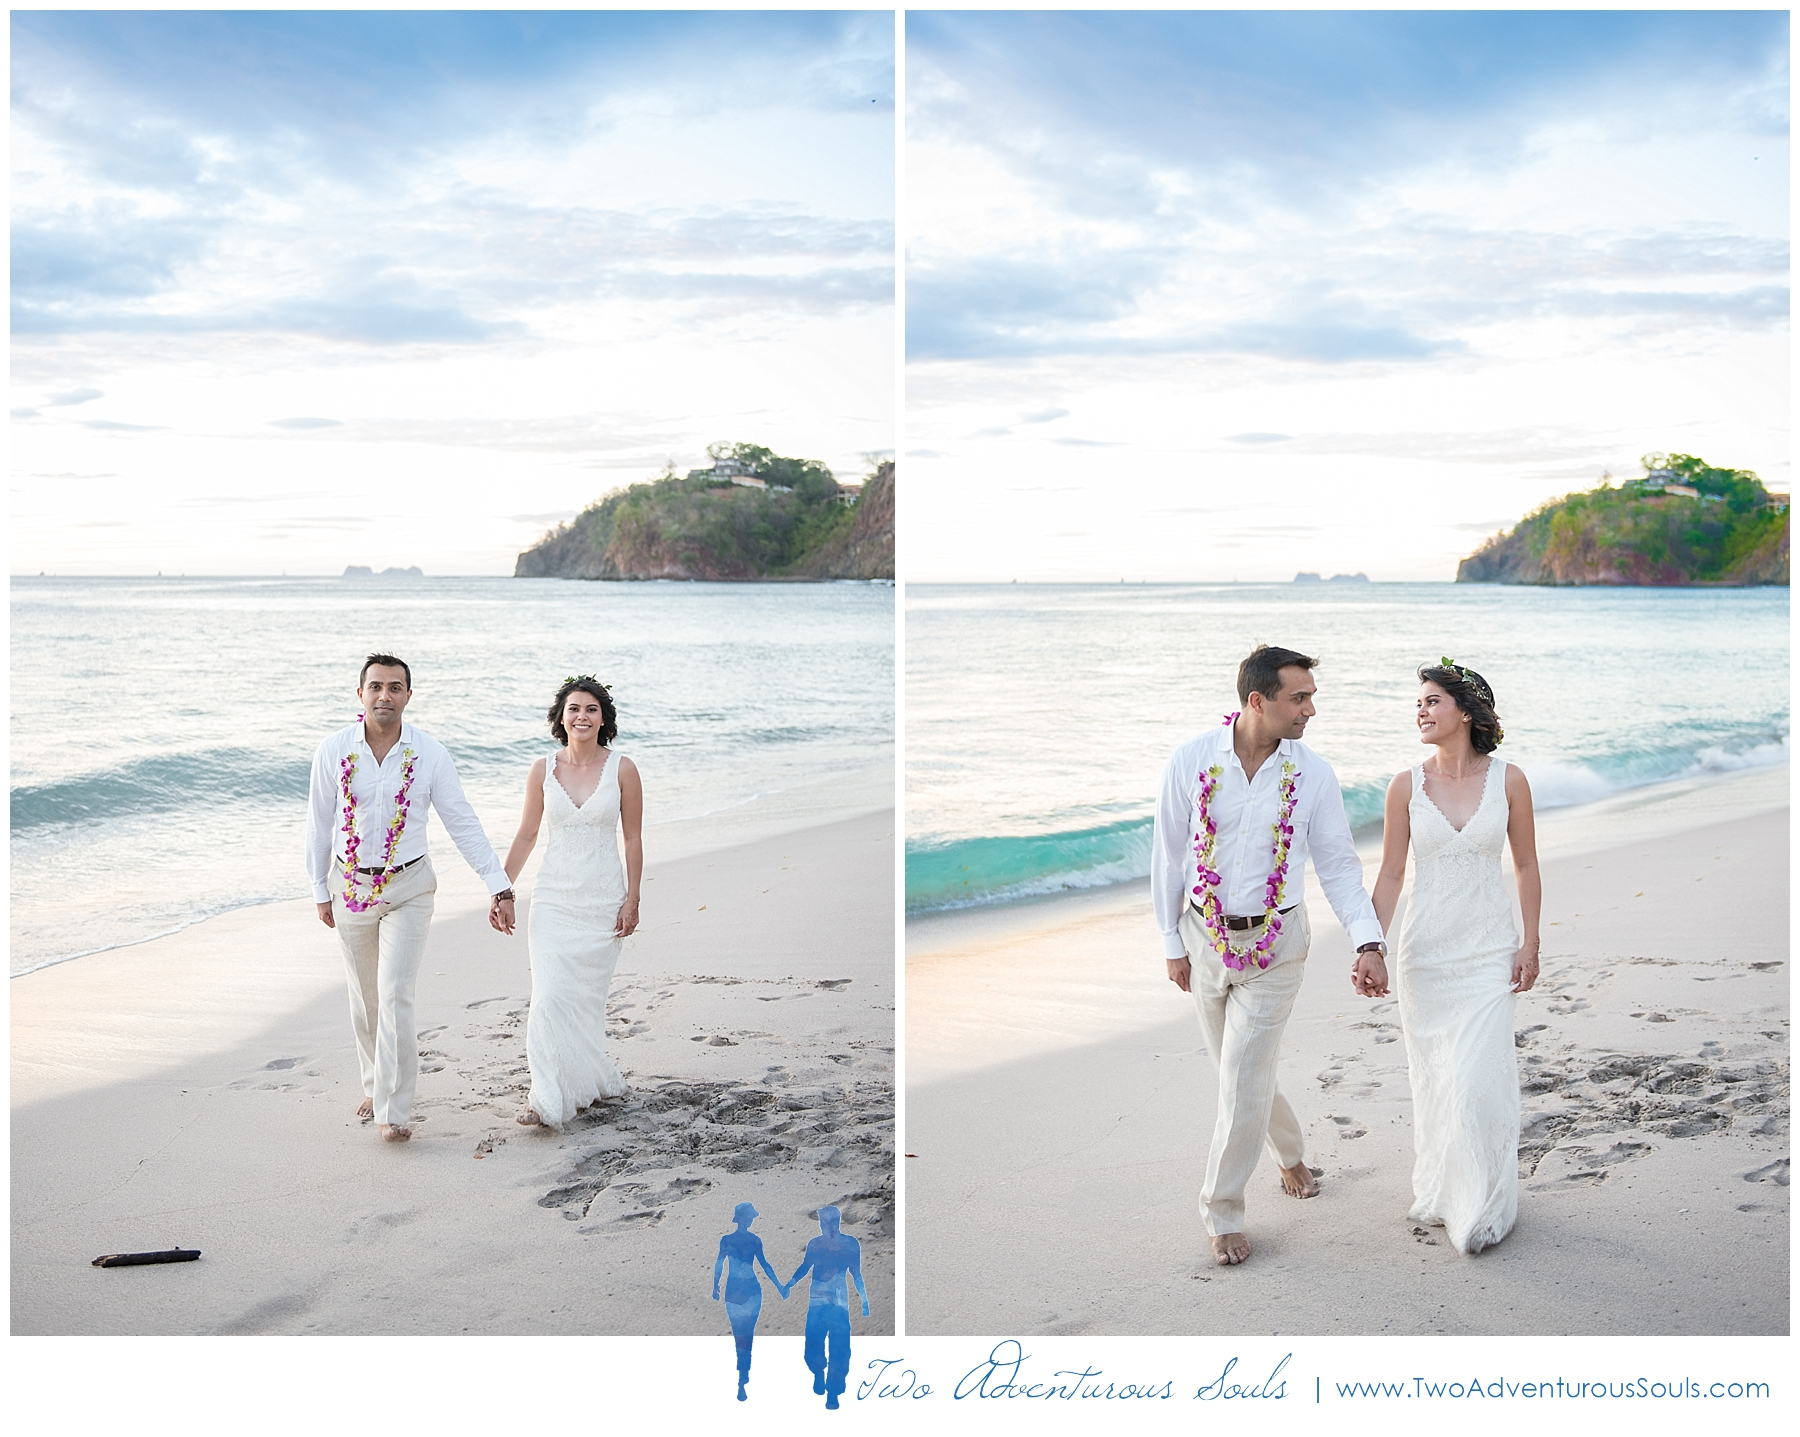 Playa-Flamingo-Wedding-Costa-Rica-Wedding-Photographers-Two-Adventurous-Souls_0026.jpg